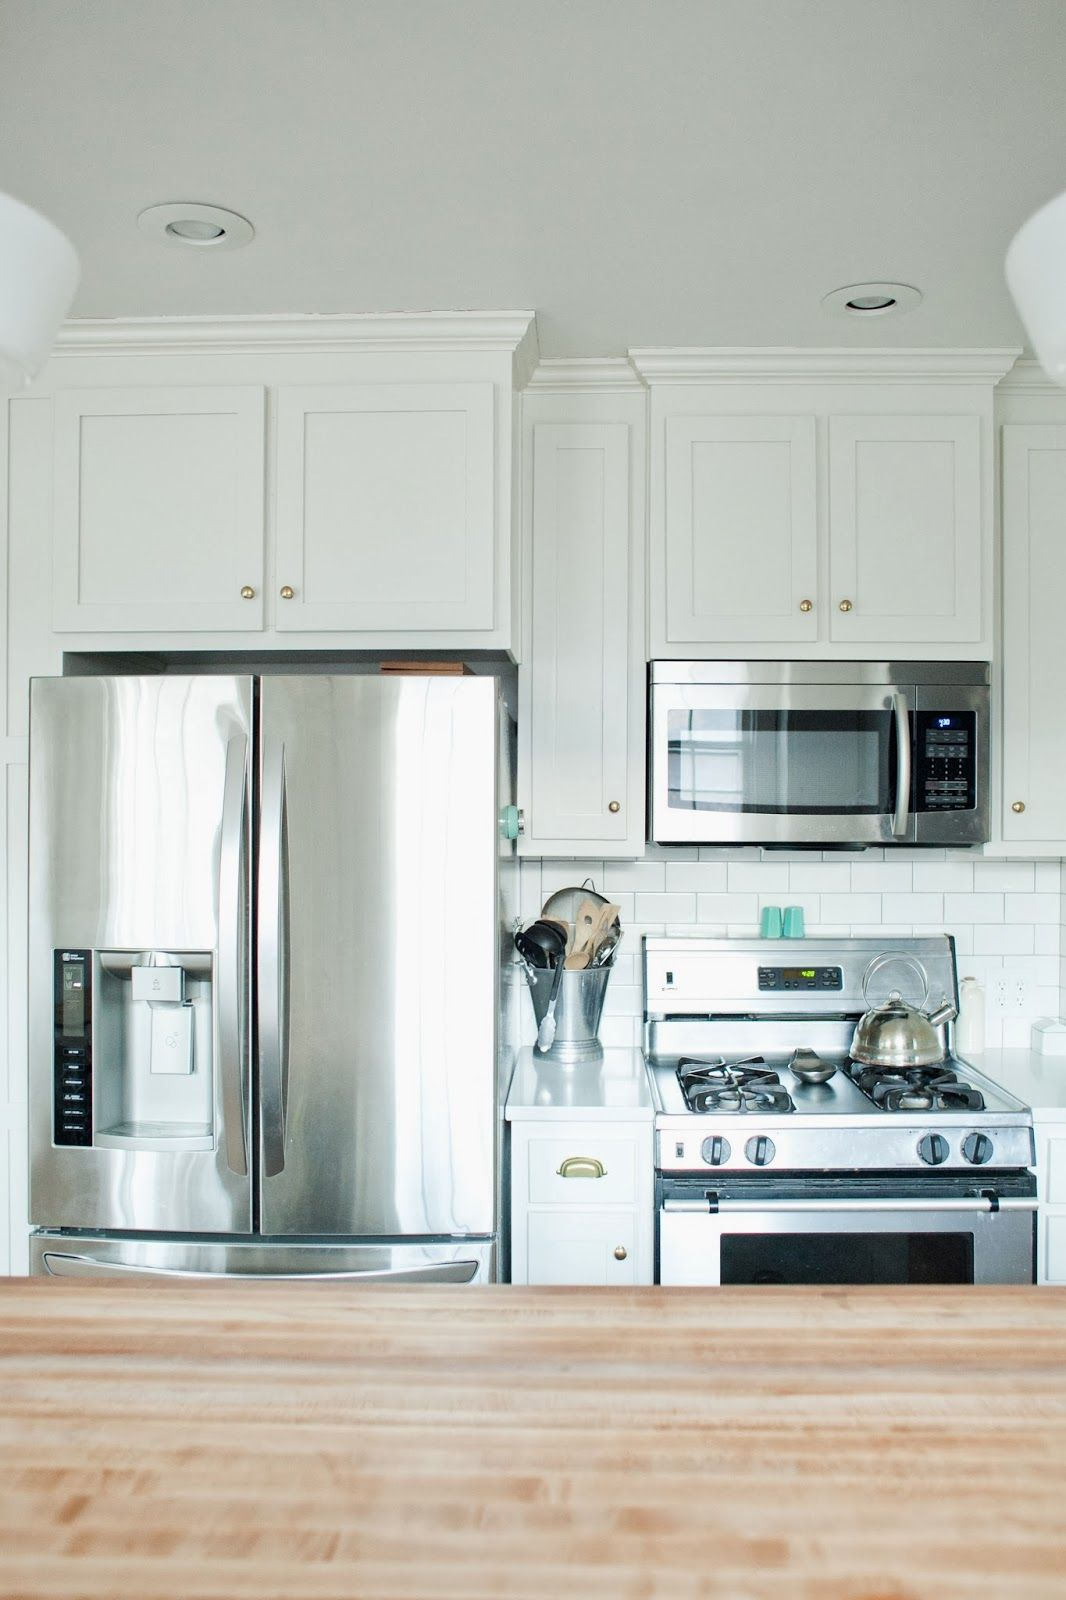 fridge and stove next to each other - Google Search | Kitchen ...